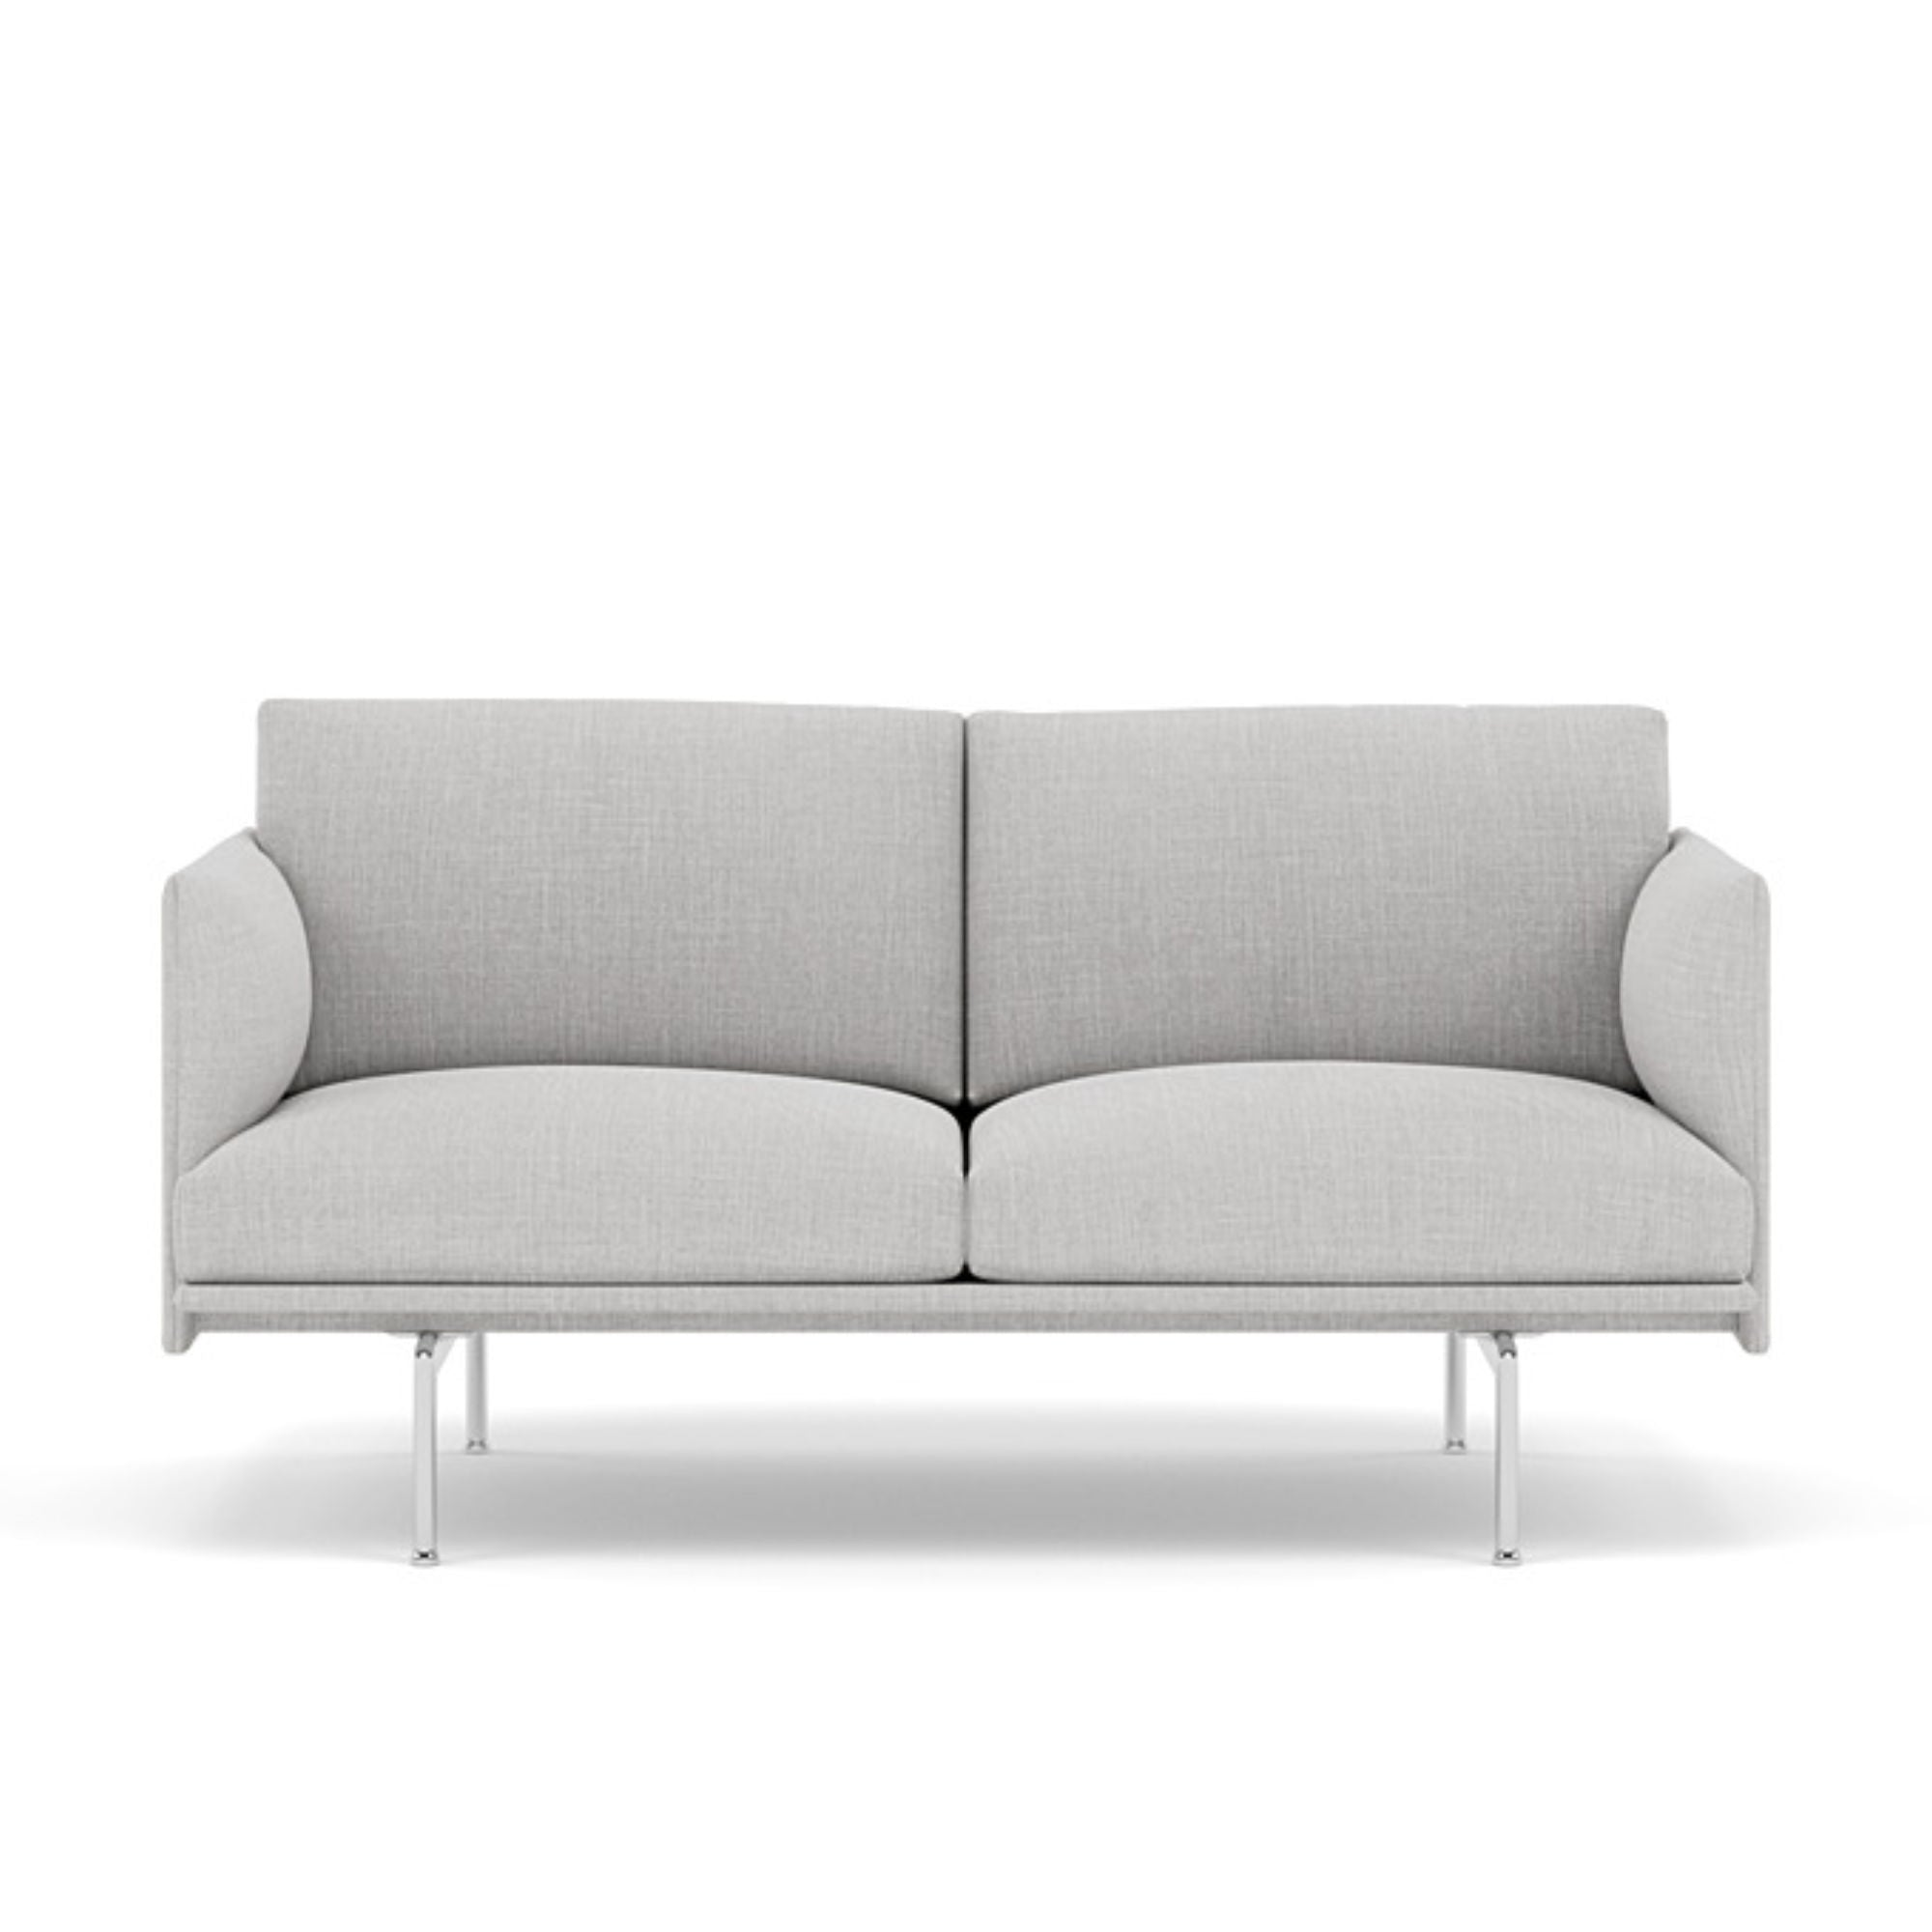 Muuto Outline Studio Sofa 140cm , Remix 123